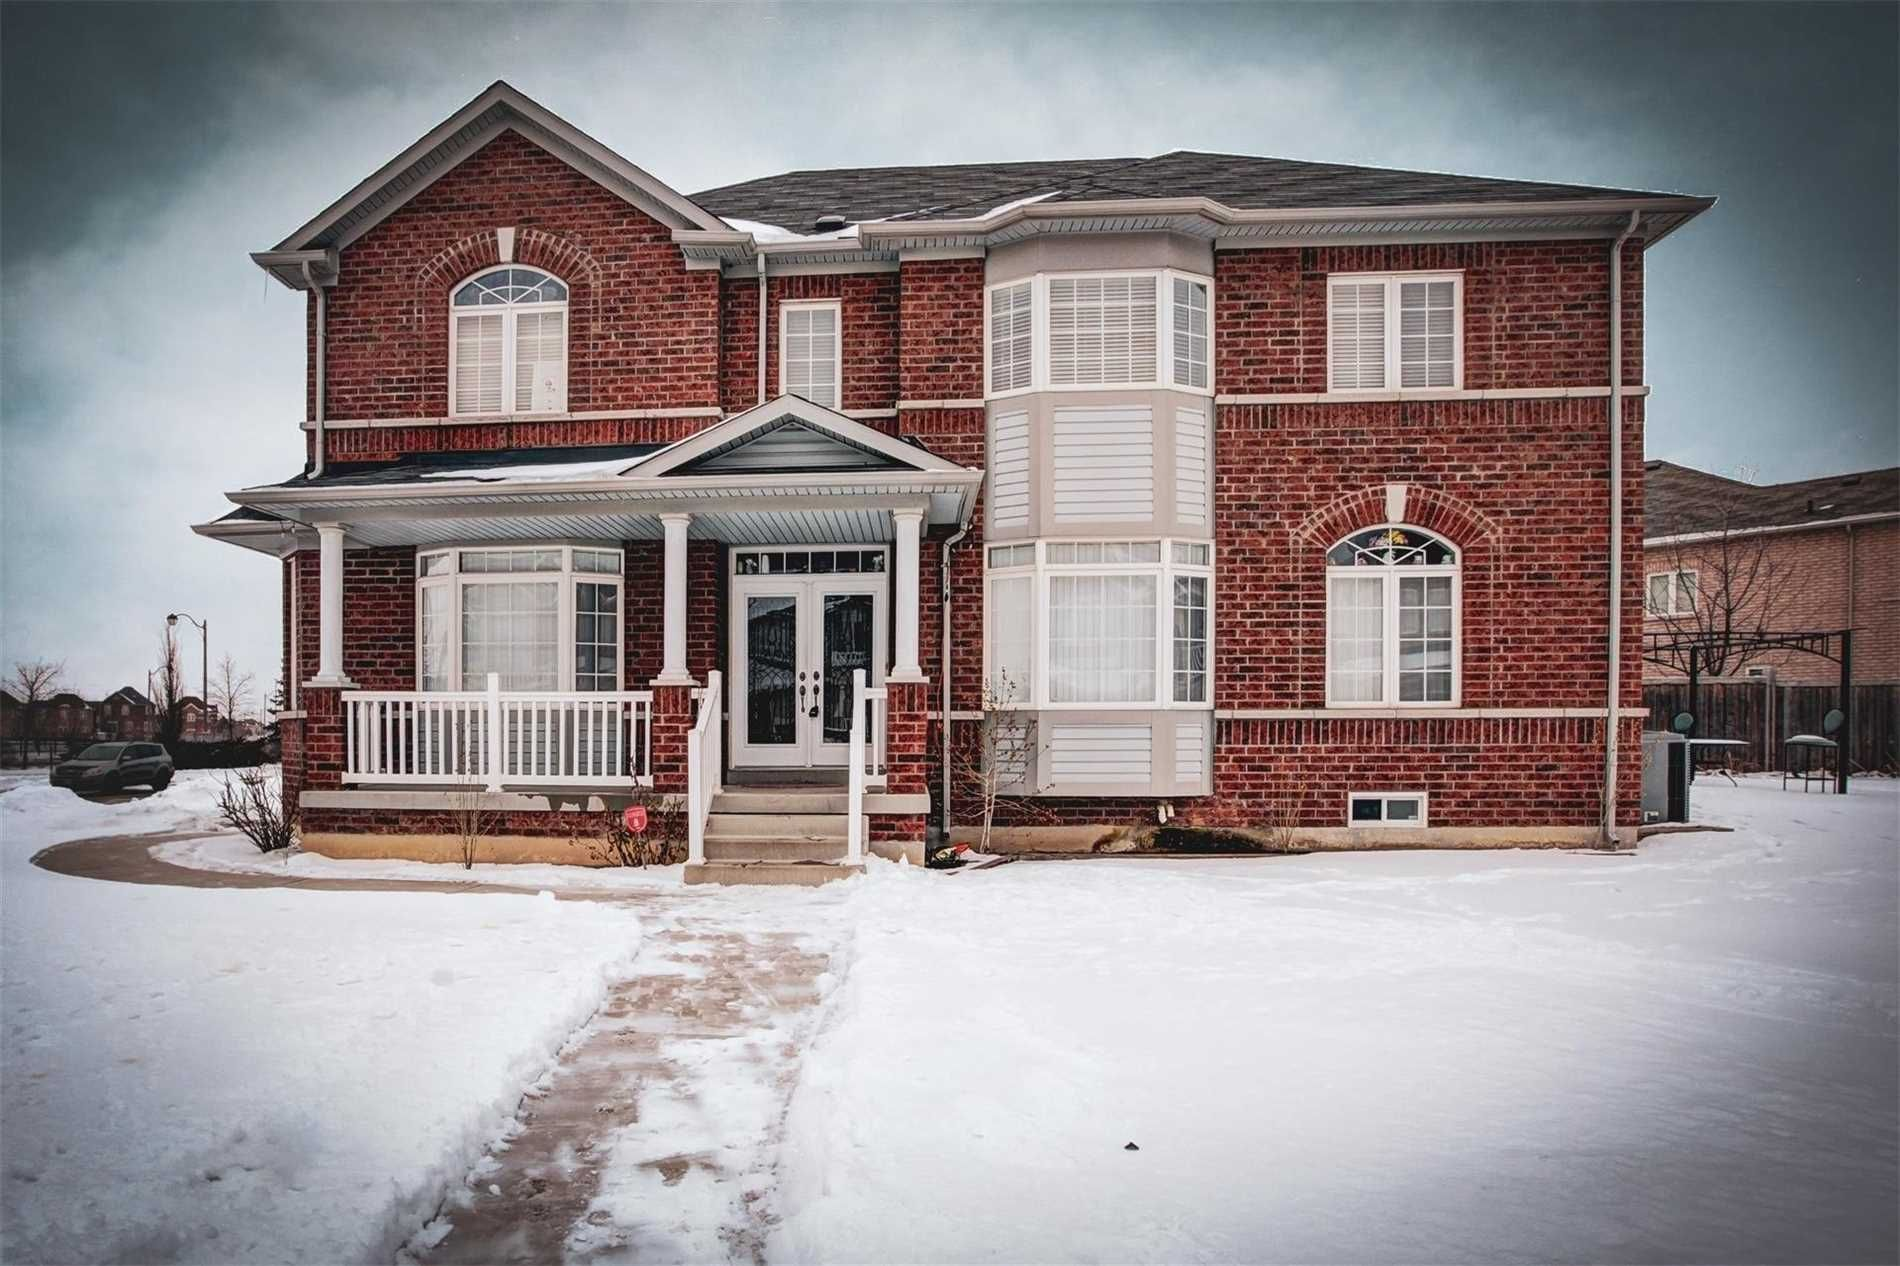 64 Watchman Road for sale